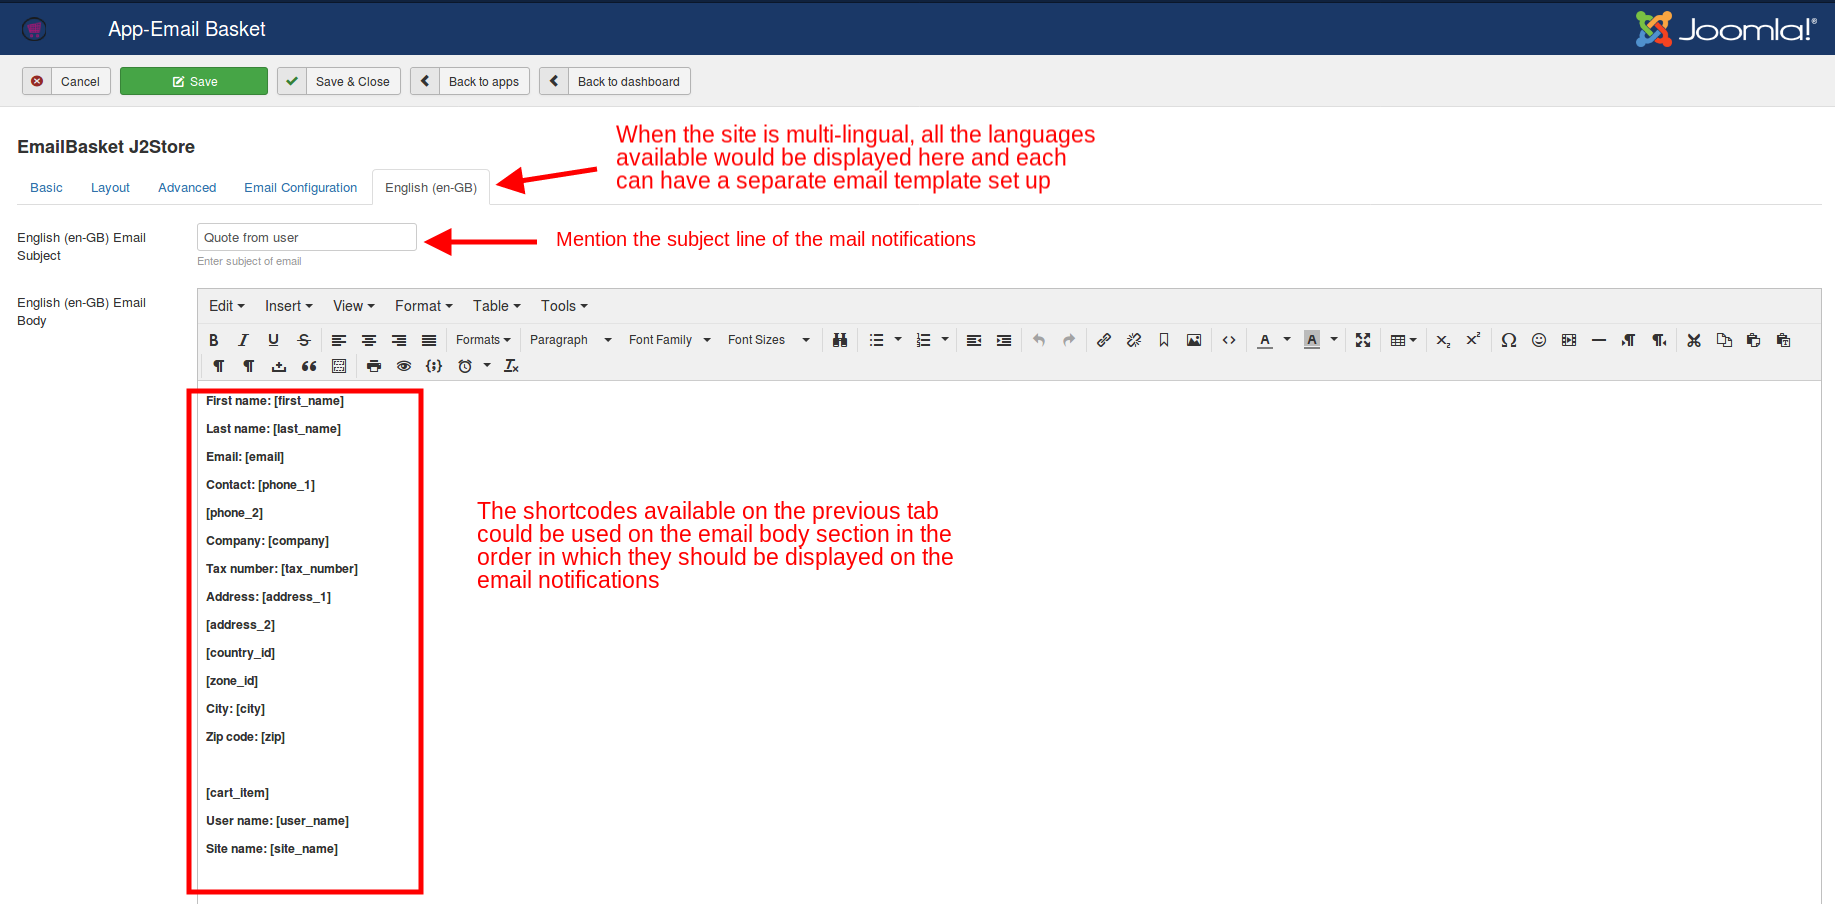 Email configuration in the English tab